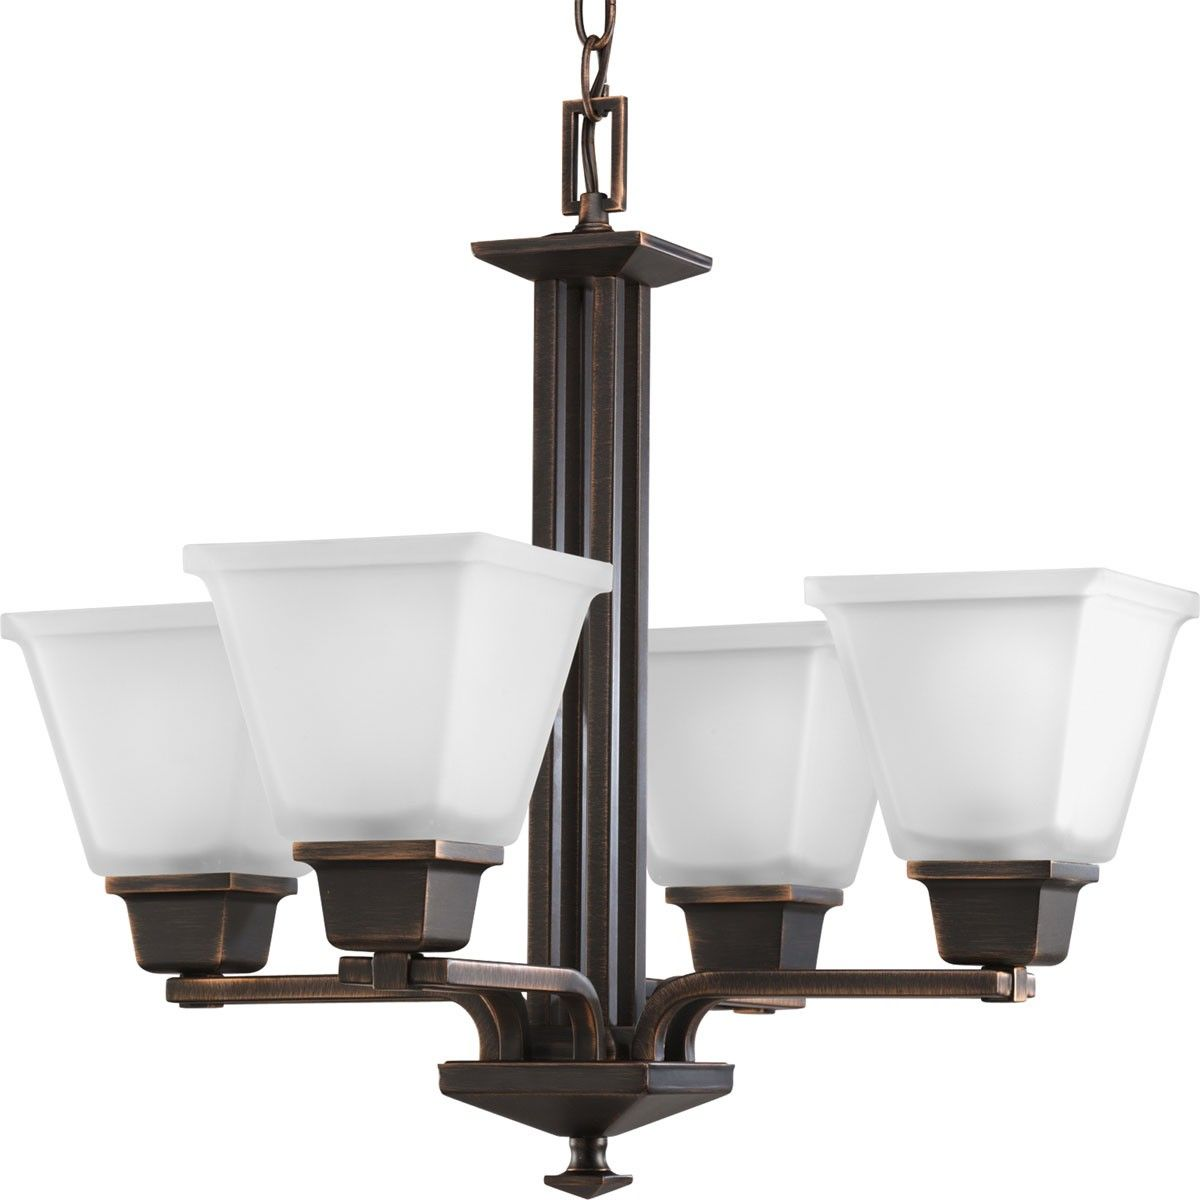 North Park Collection Chandeliers In Venetian Bronze Finish By Progress Lighting From Outlet Authorized Dealer